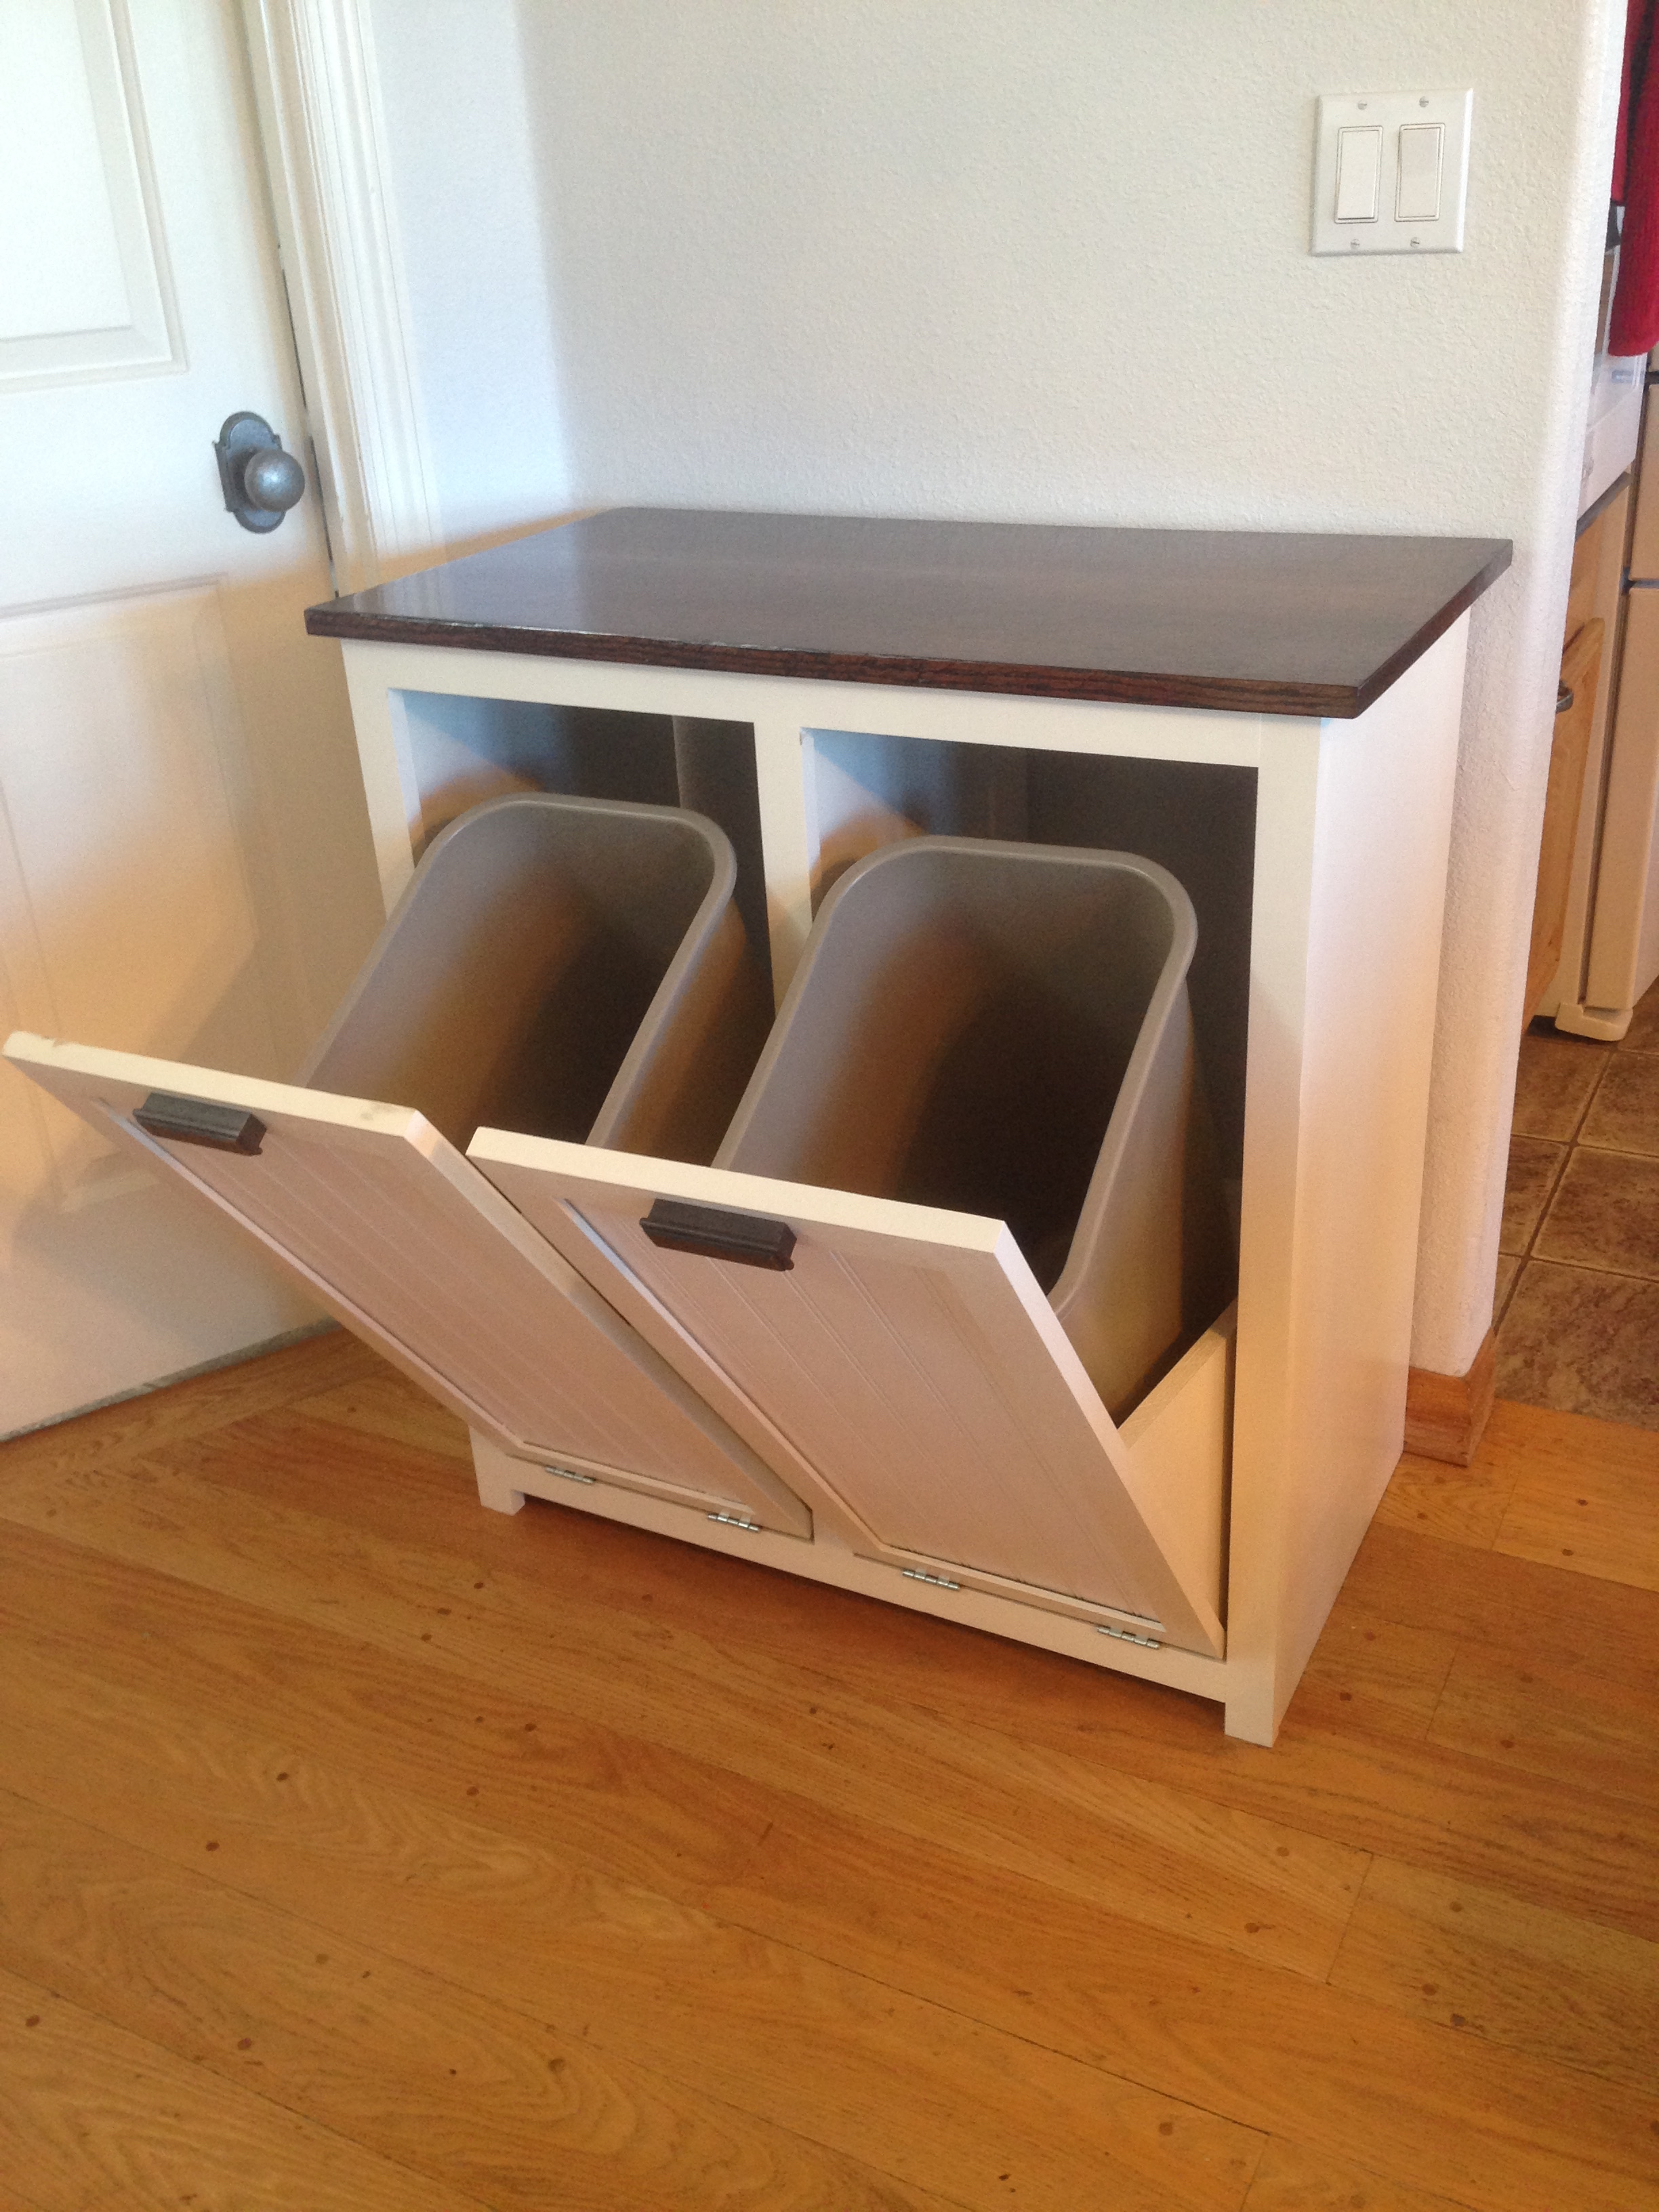 I Built A Tilt Out Trash Can Cabinet